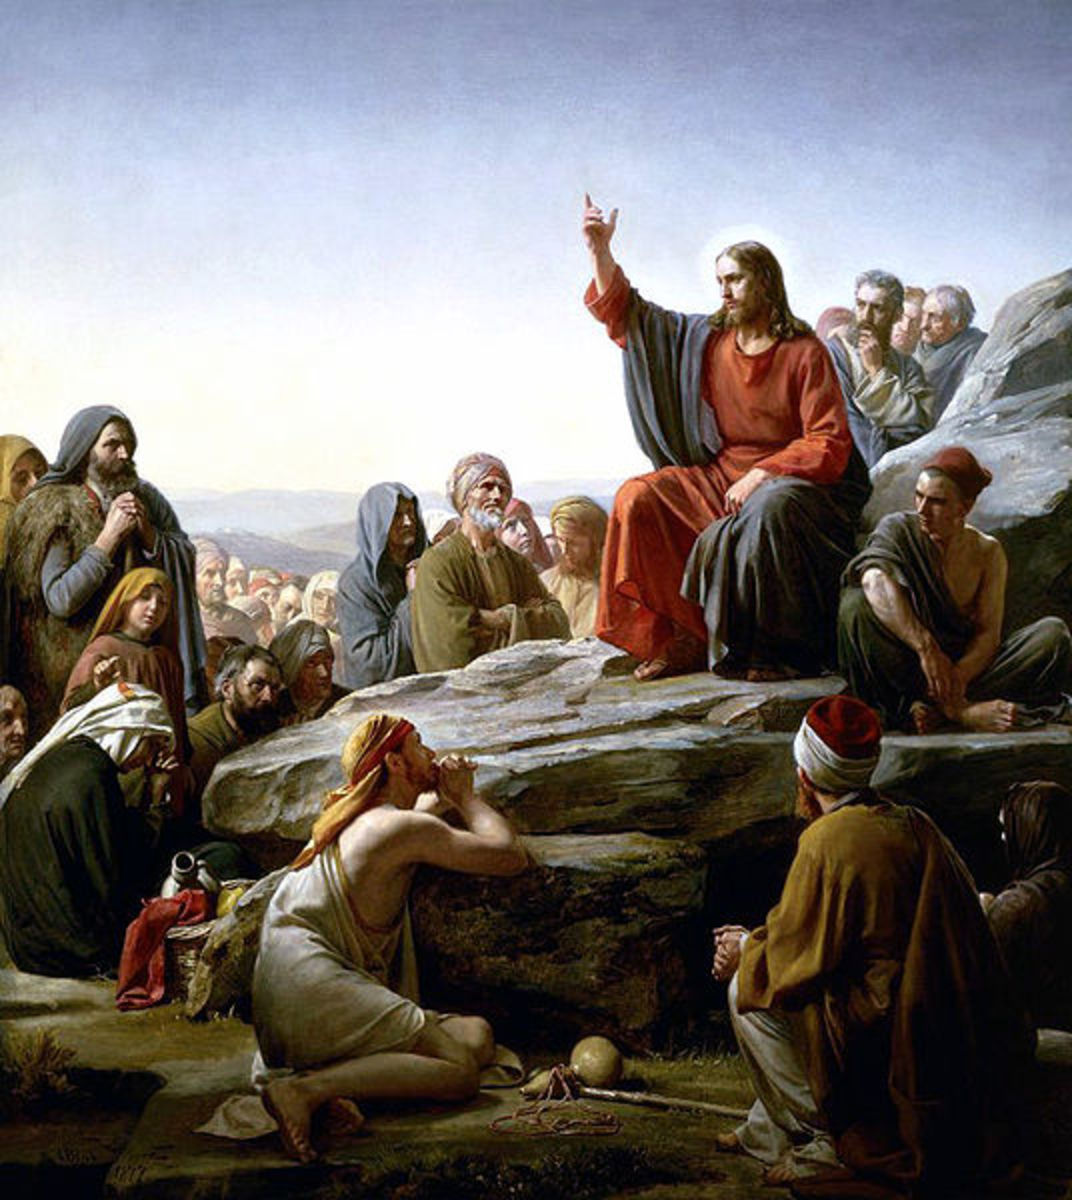 A painting of the Sermon on the Mount, by nineteenth century artist, Carl Heinrich Bloch. With the humility of the meek, we can all be heroes and never victims.